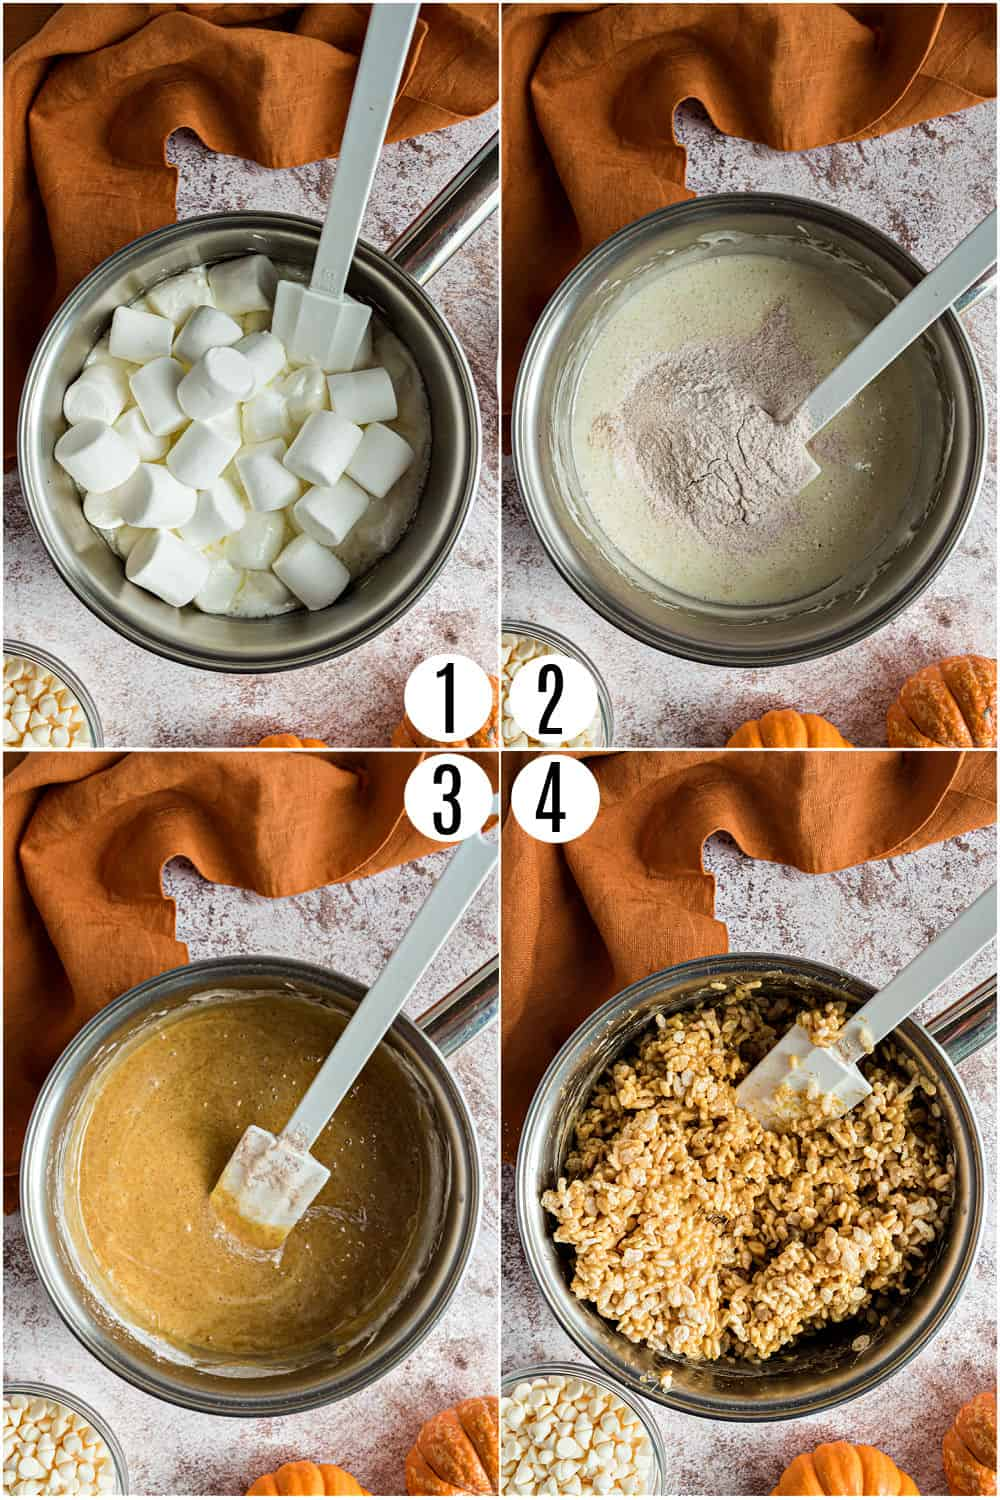 Step by step photos showing how to make rice krispie treats with pumpkin pie spice.